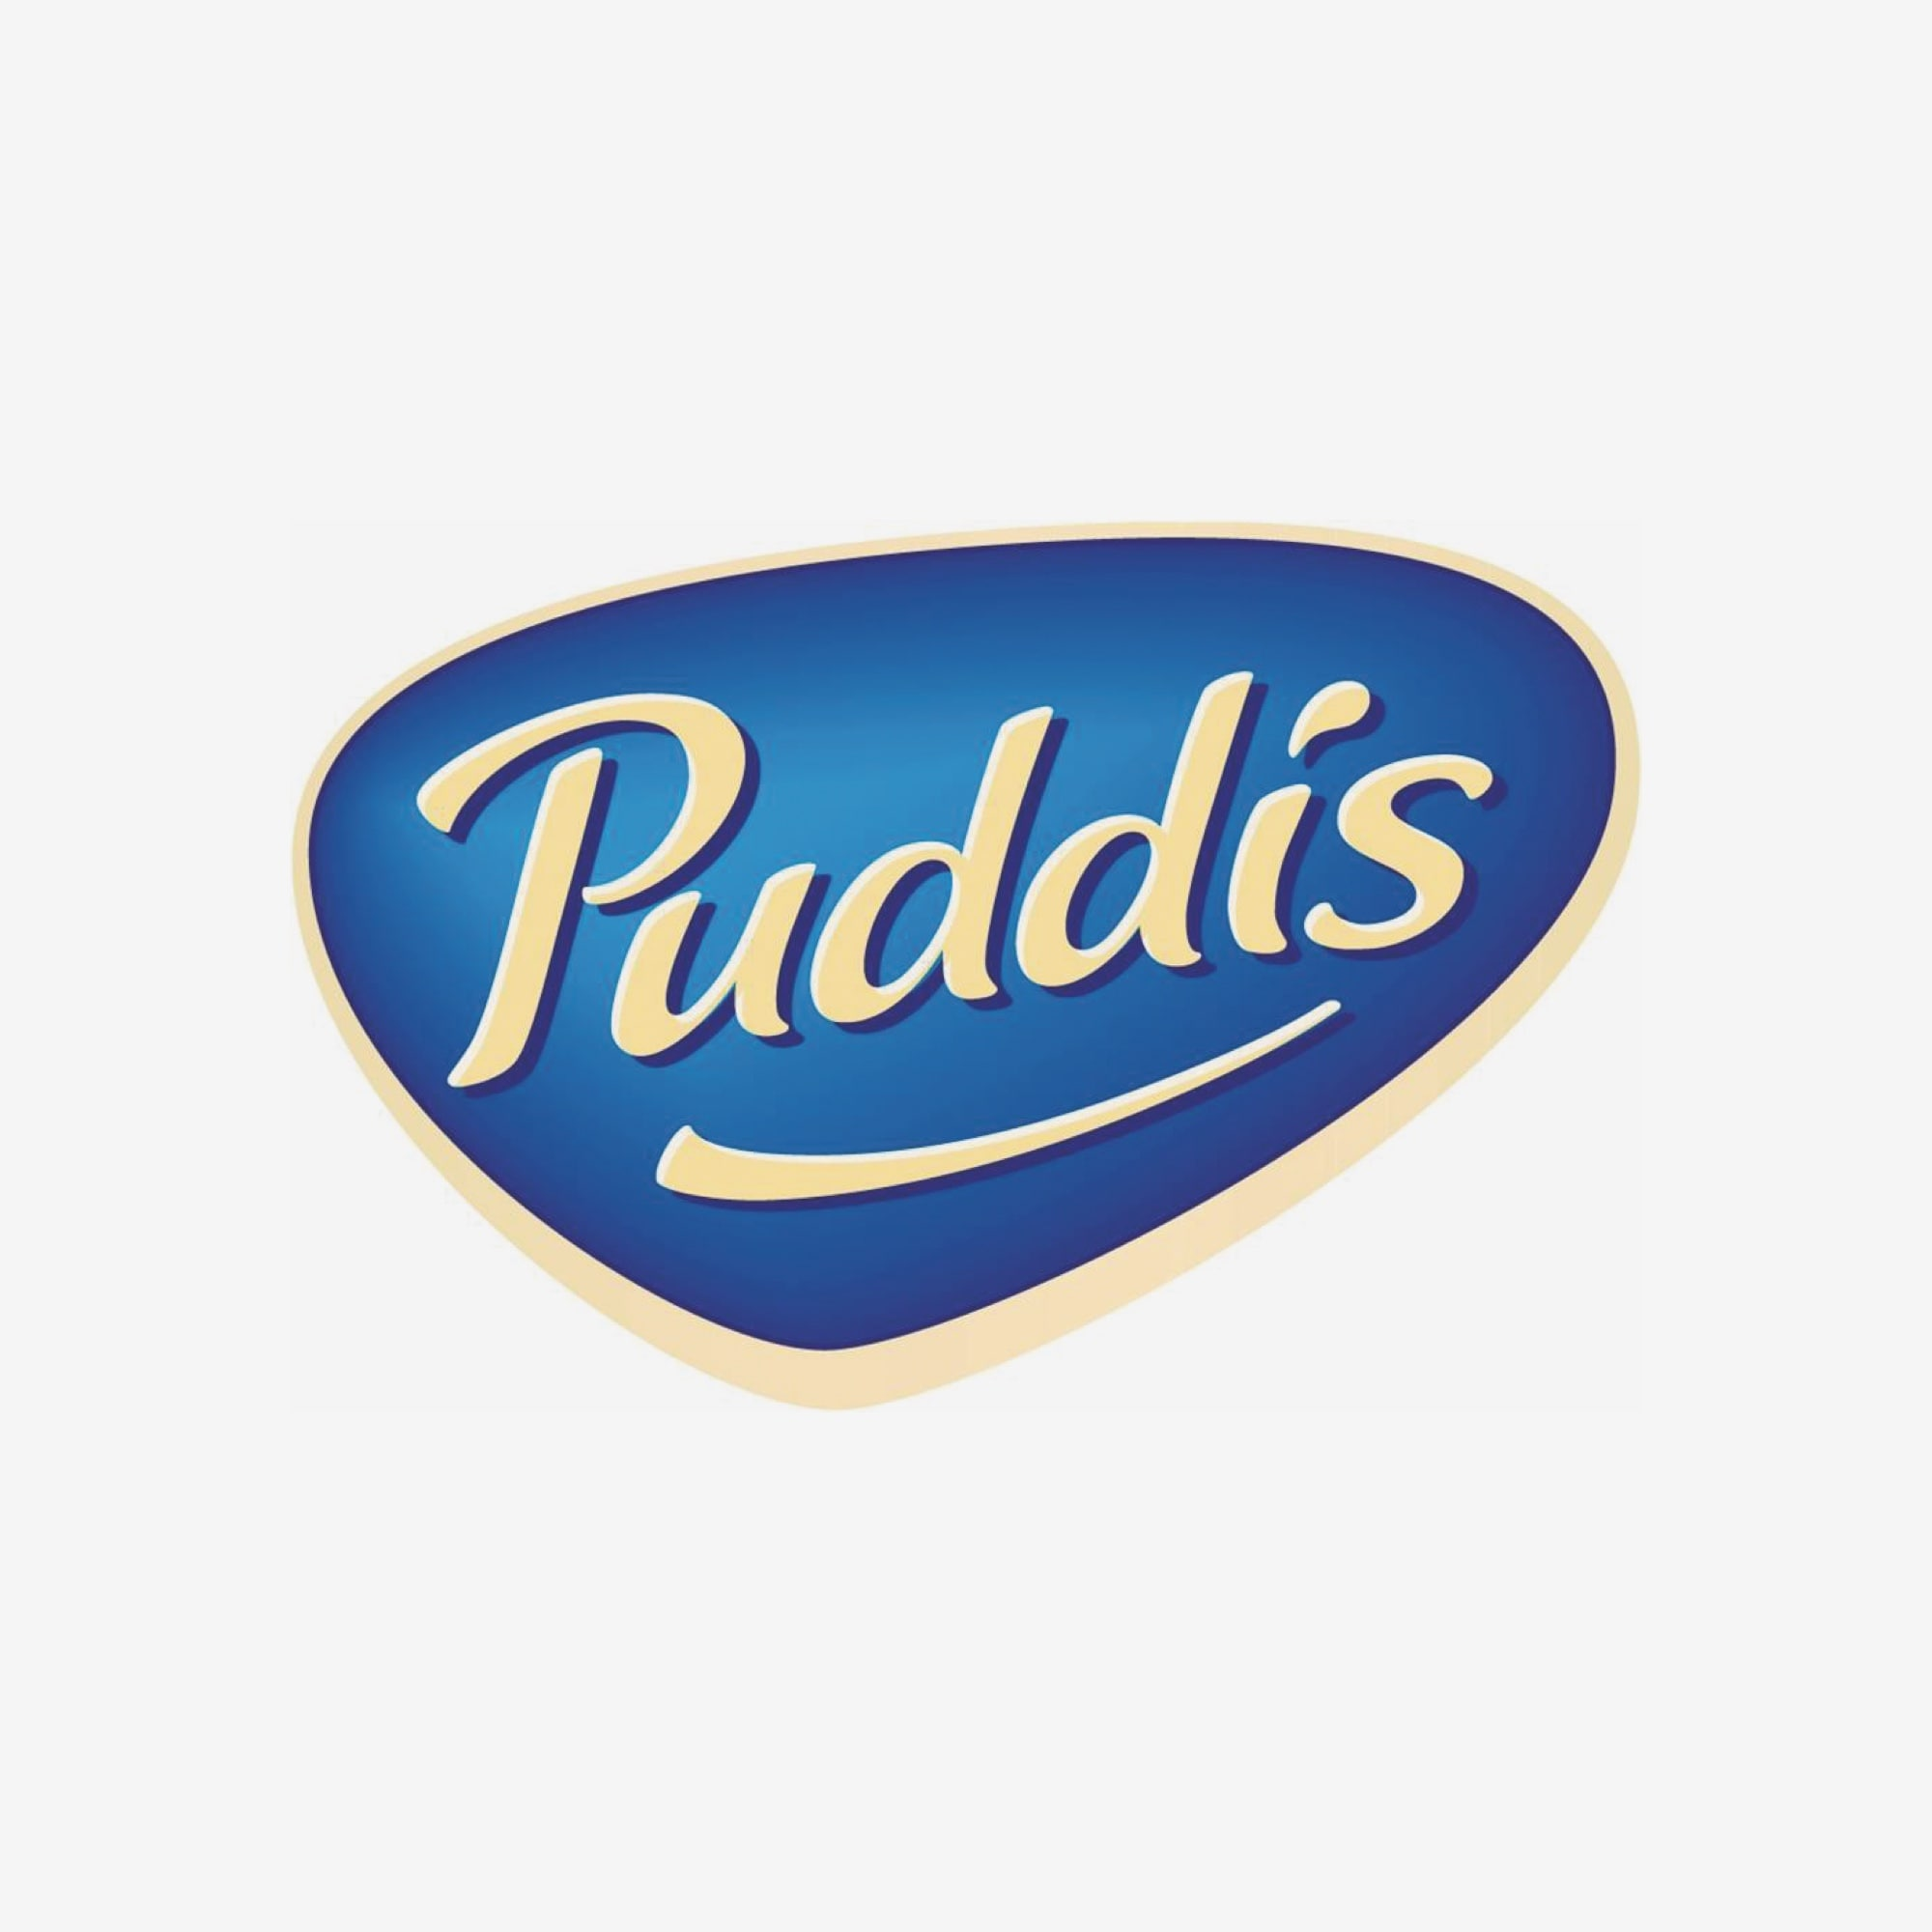 Logo of Puddis a brand of FrieslandCampina